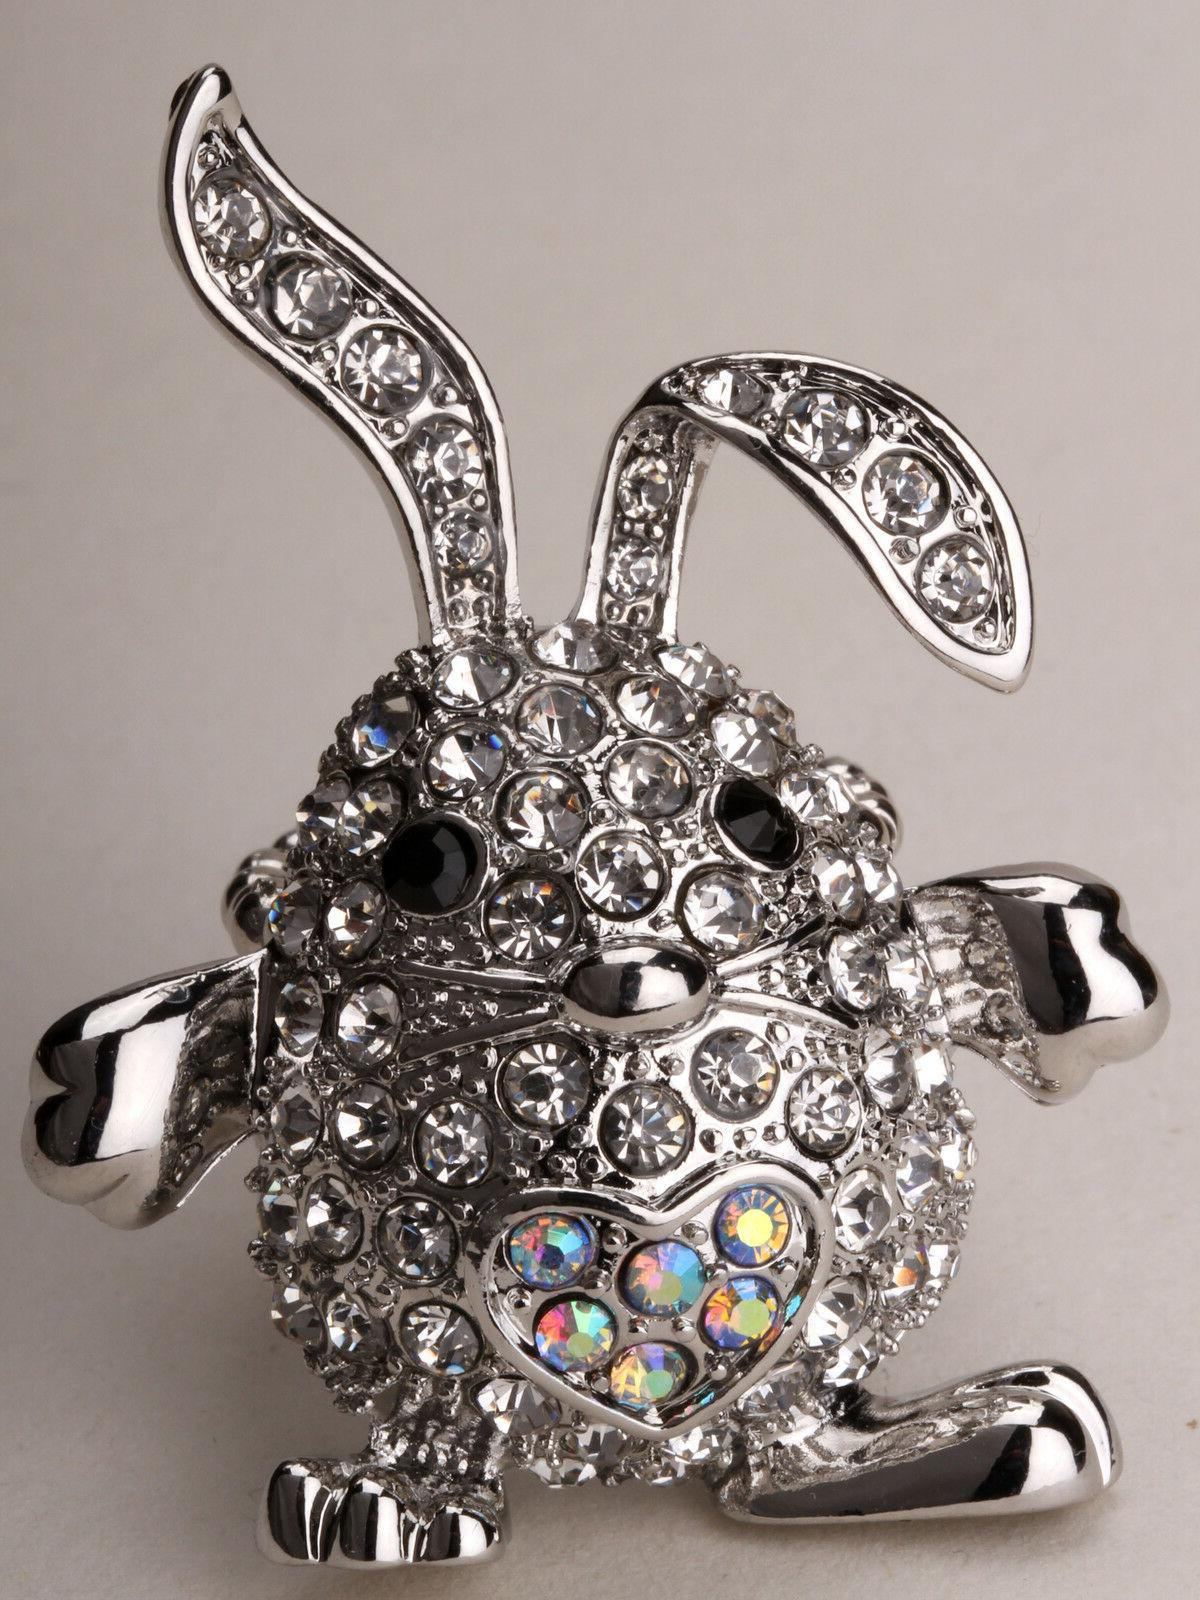 Bunny rabbit stretch ring easter jewelry gifts costume decor